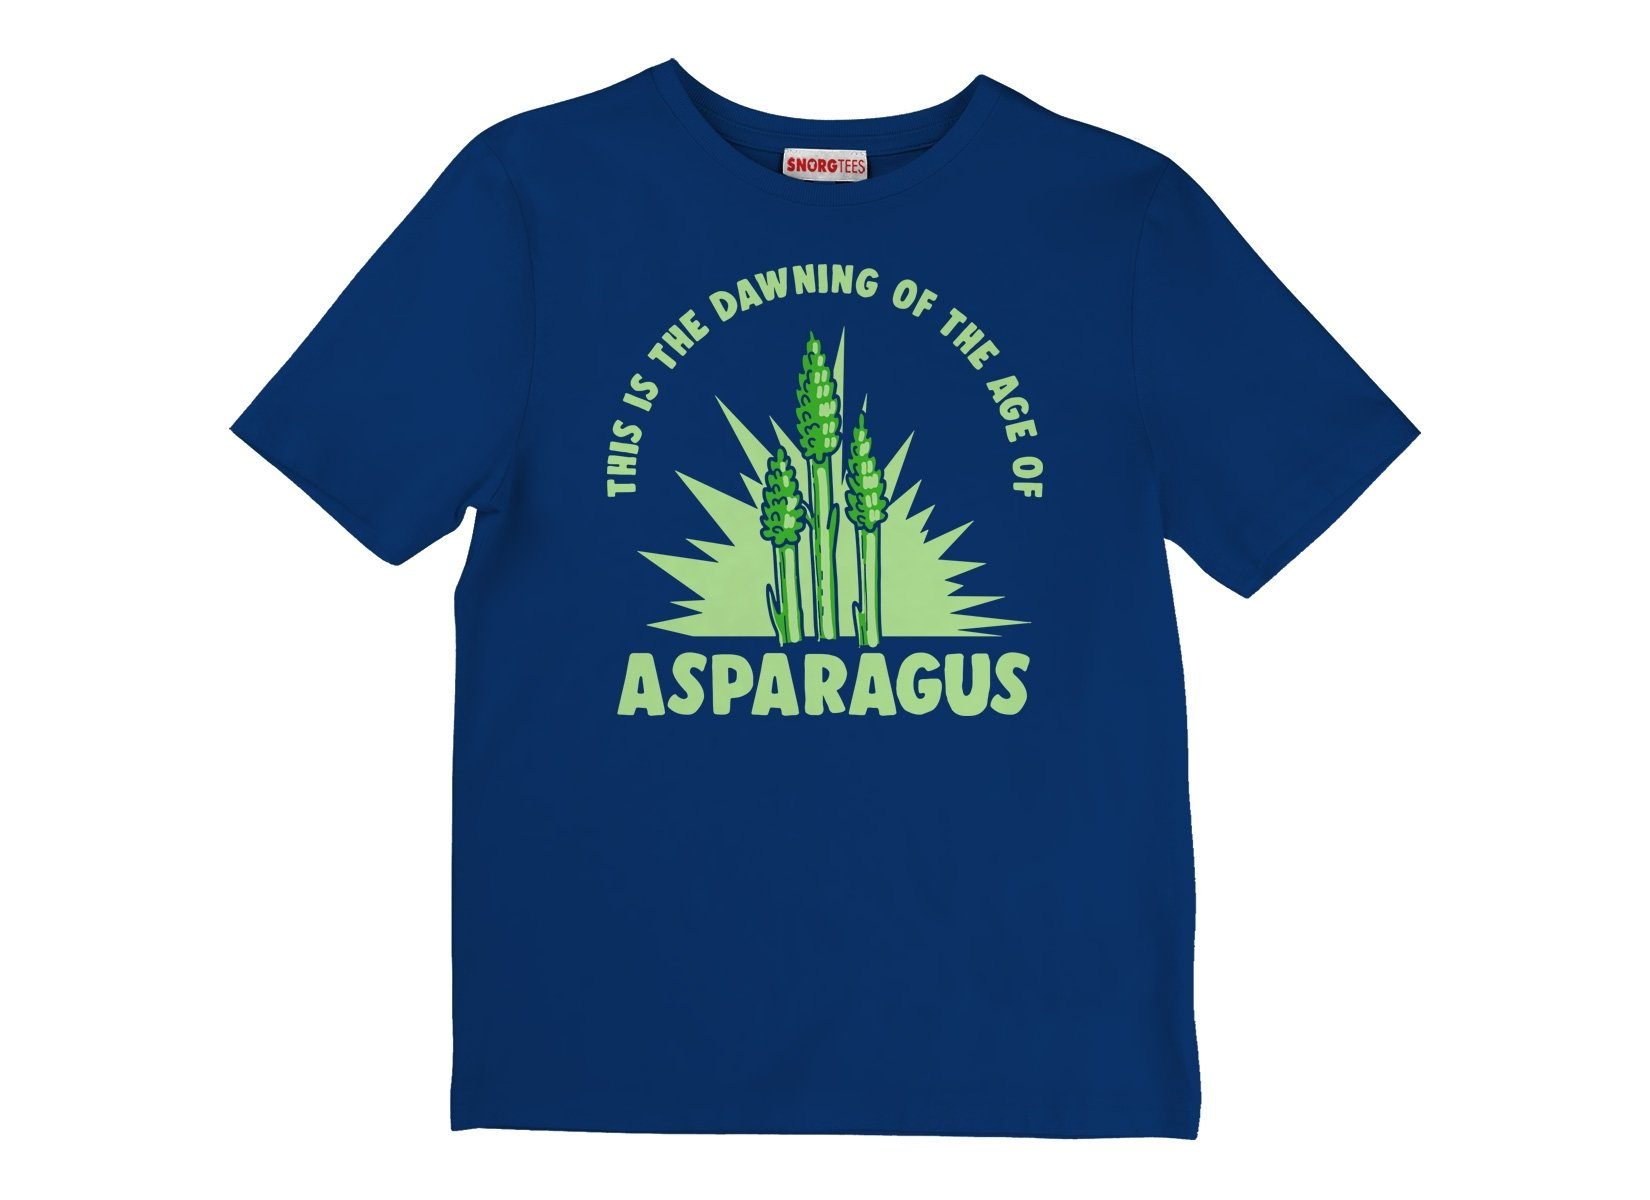 Age Of Asparagus on Kids T-Shirt